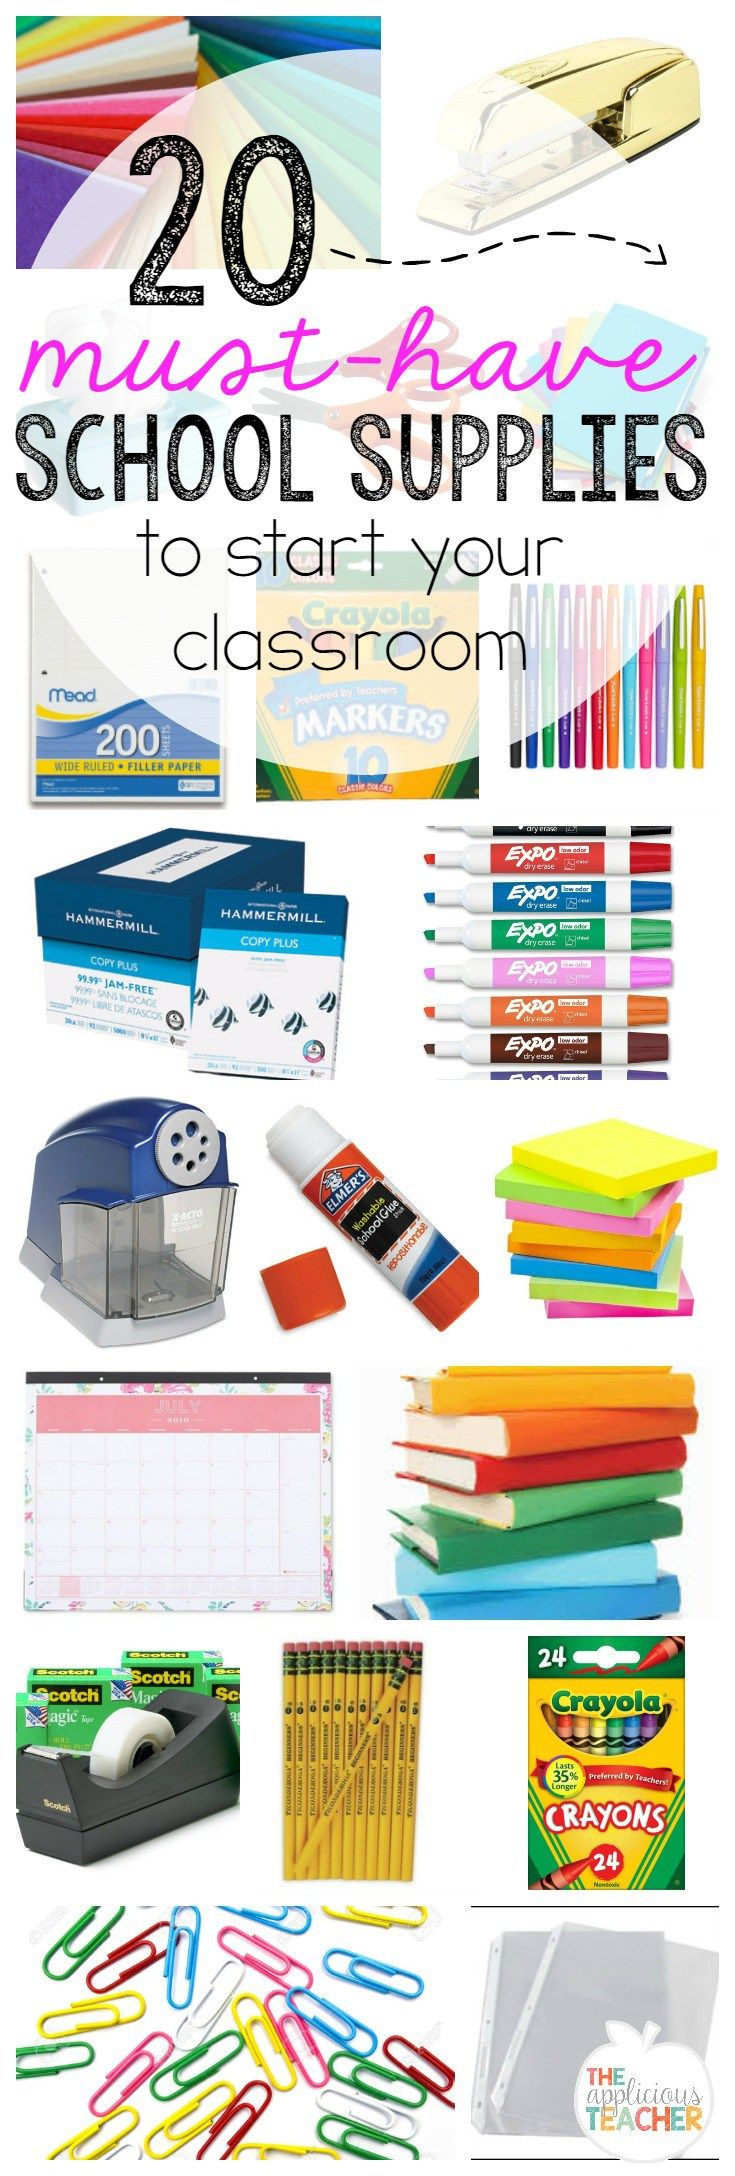 20 Must-have school supplies to start your classroom. New teacher low on cash? These are the top 20 things you should be buying for your classroom!